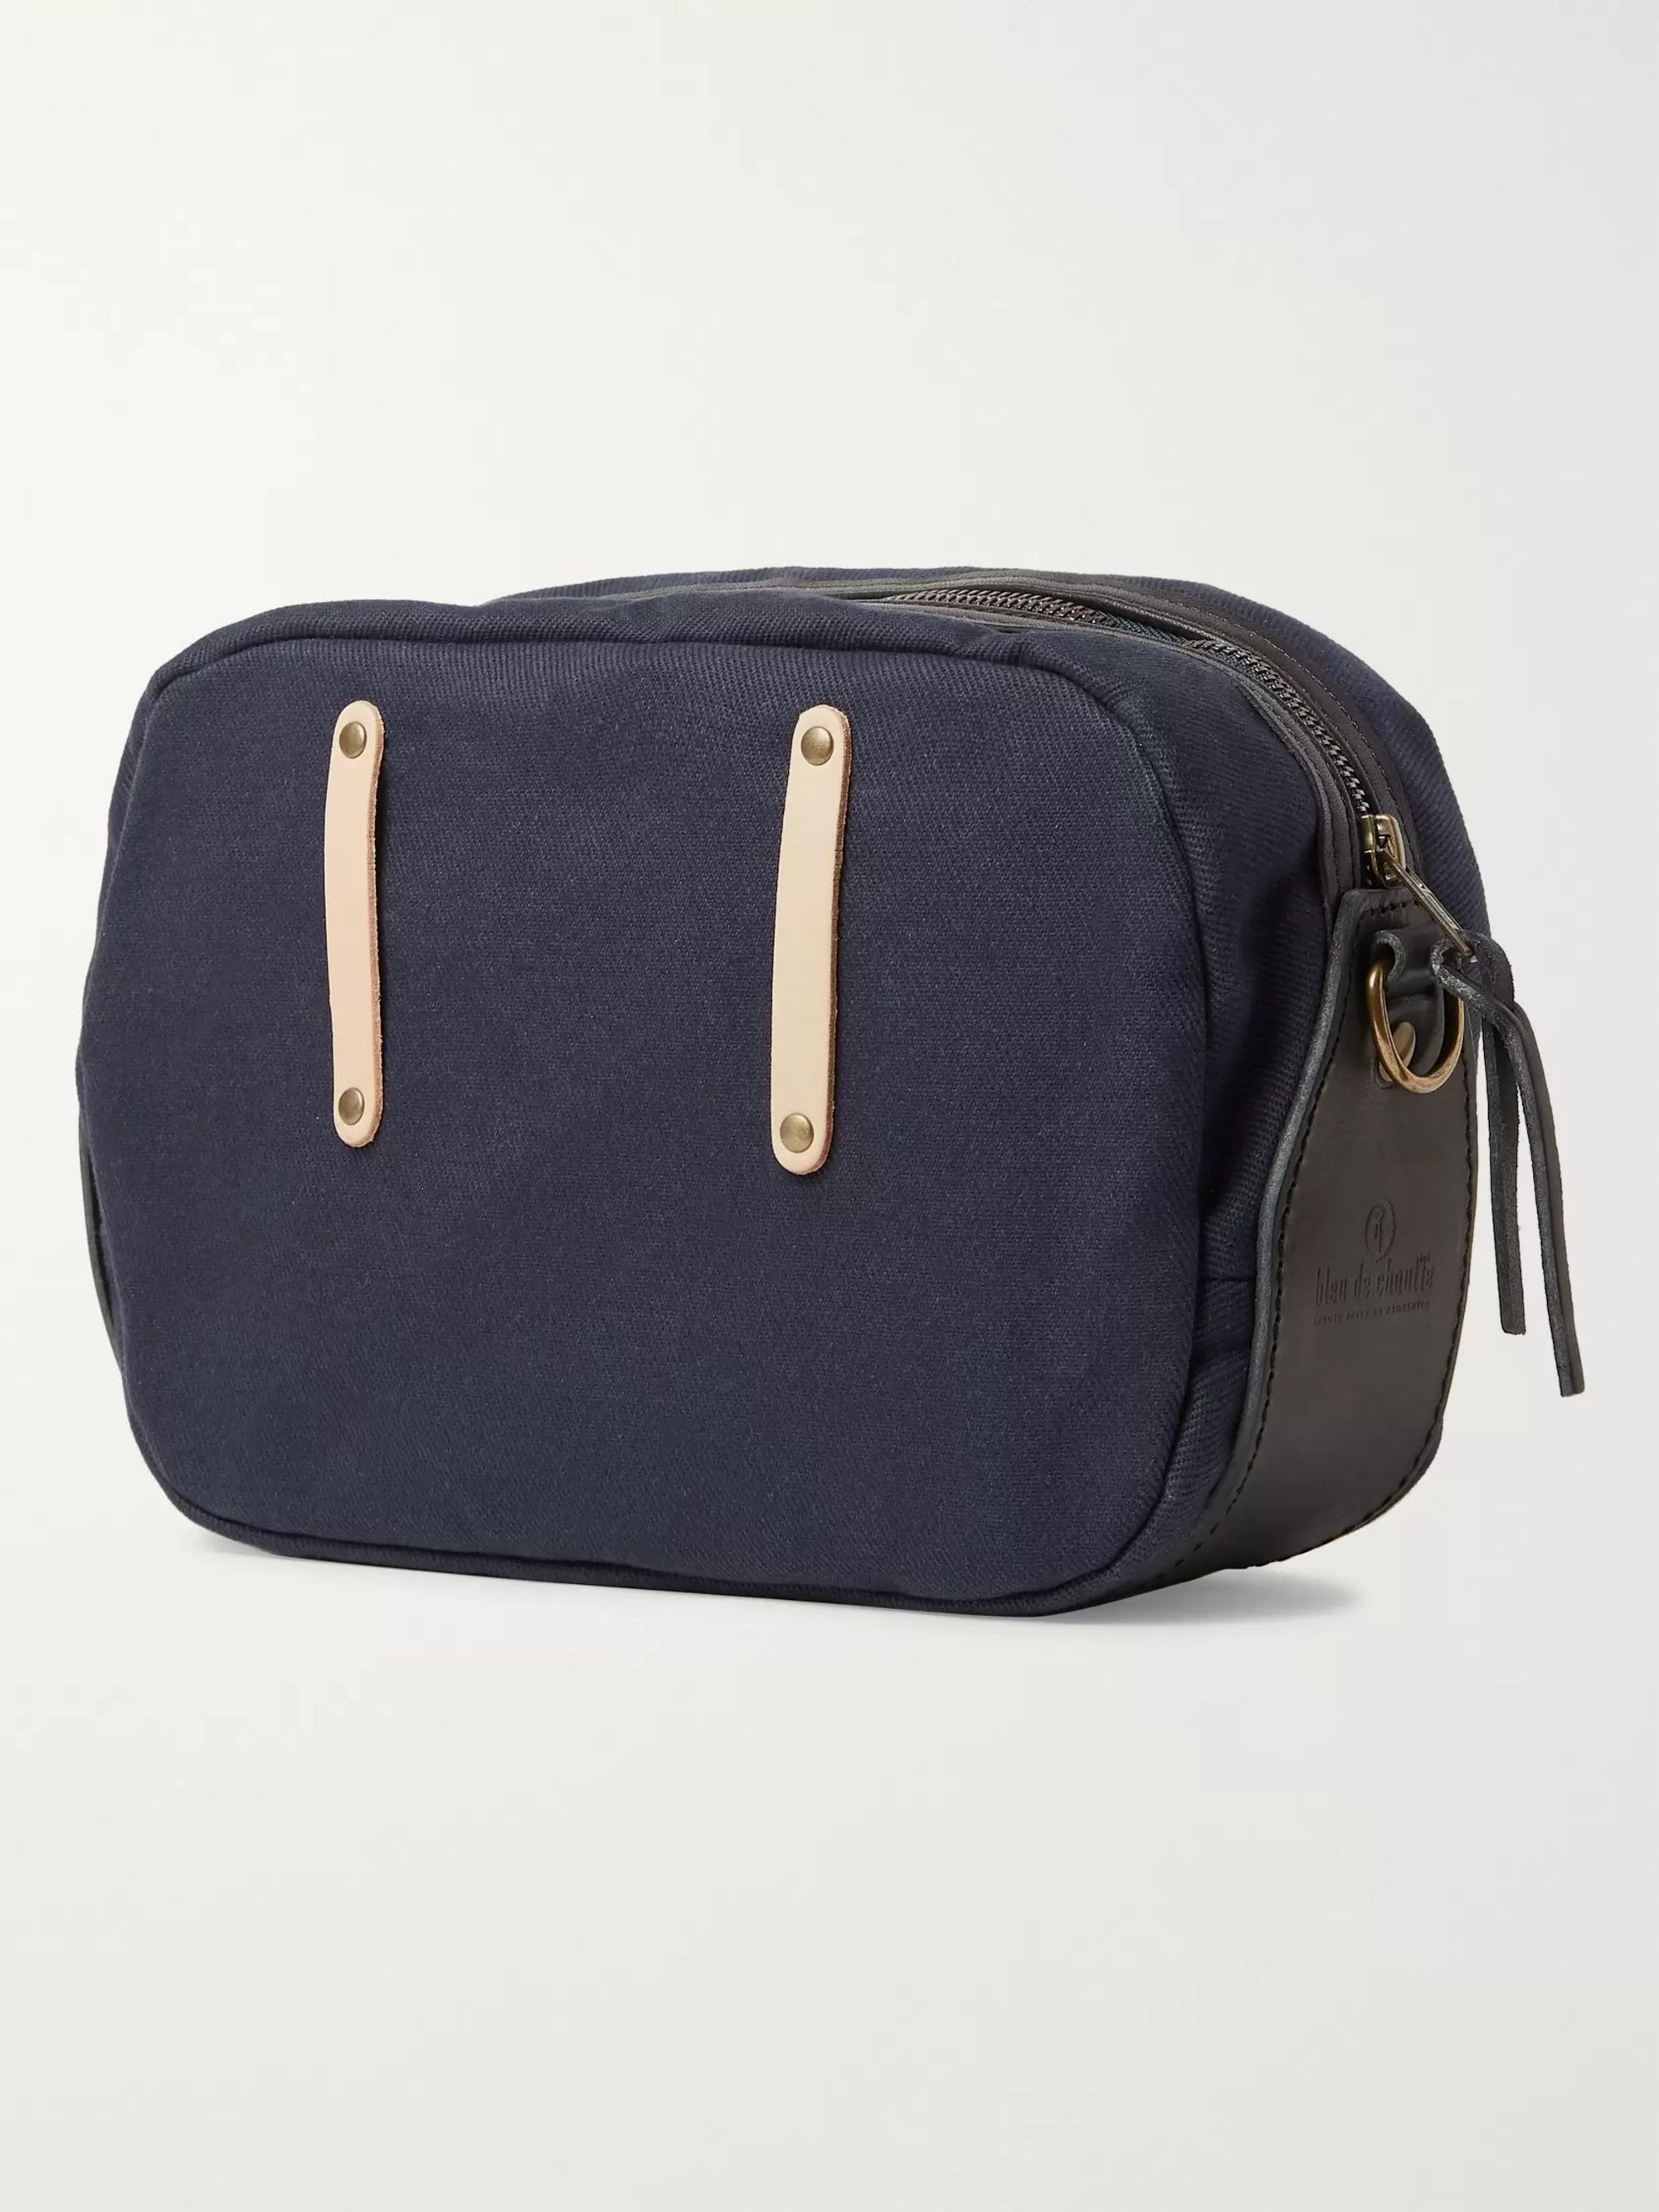 Bleu de Chauffe Leather-Trimmed Canvas Bag